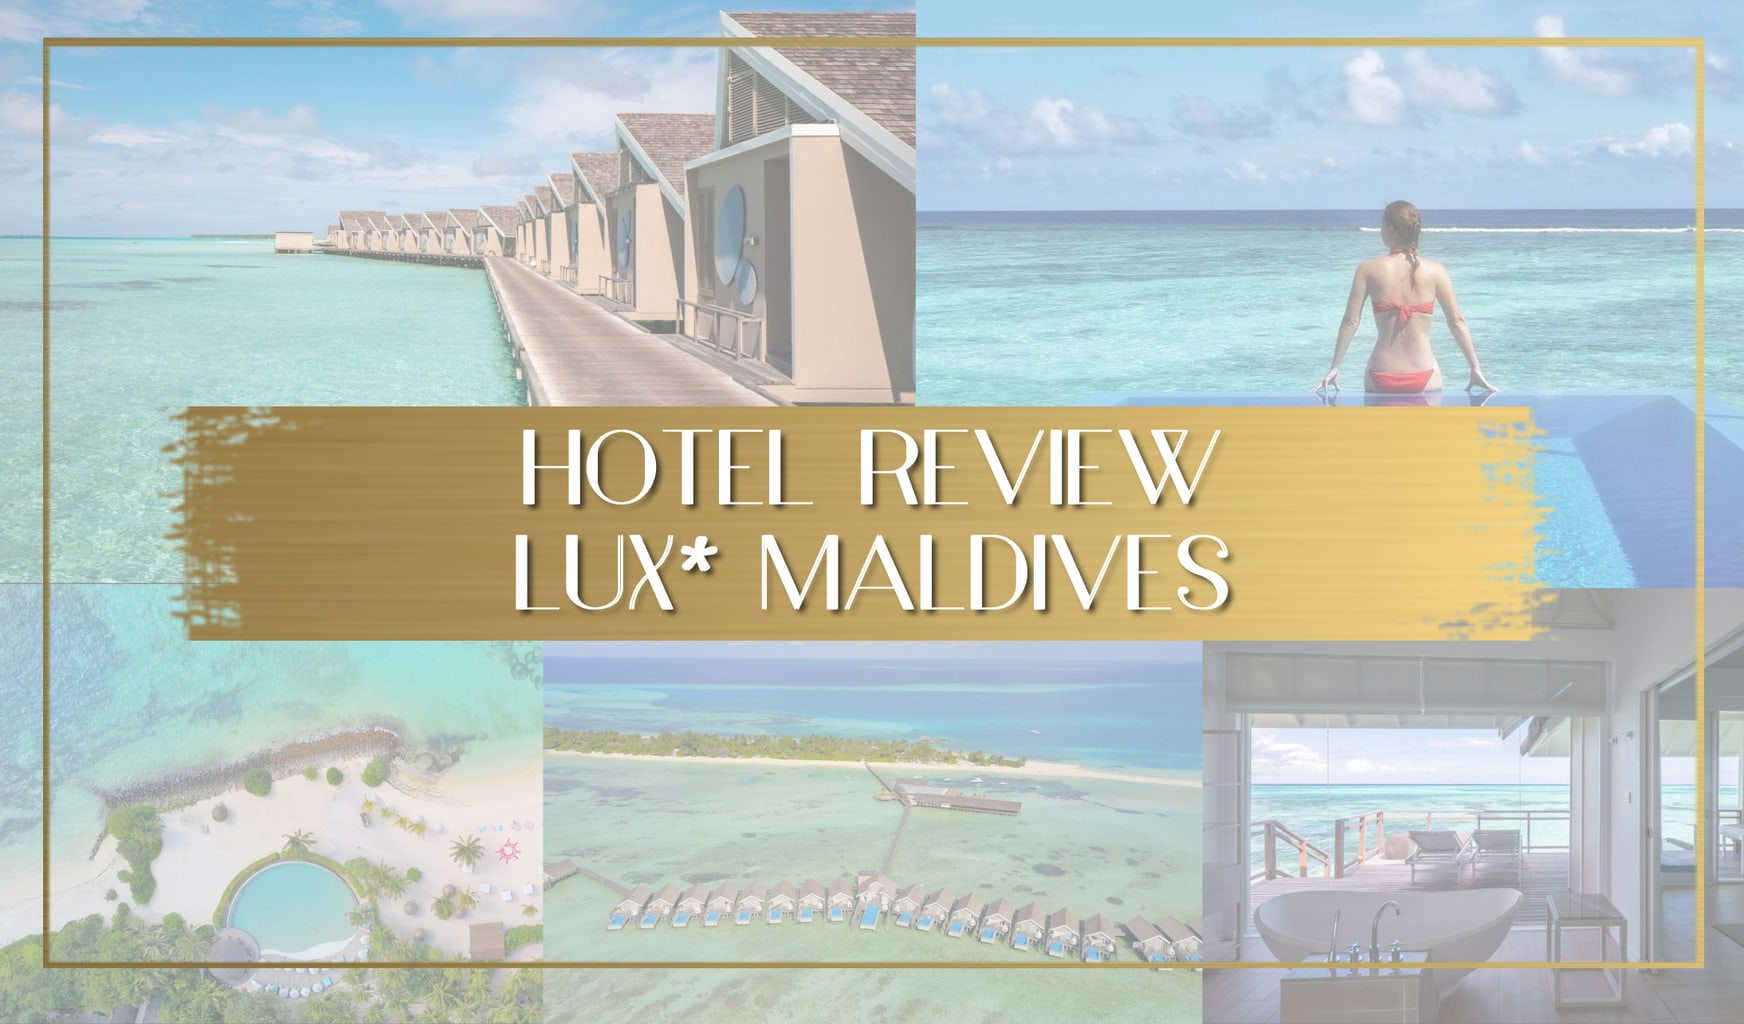 Hotel Review LUX Maldives